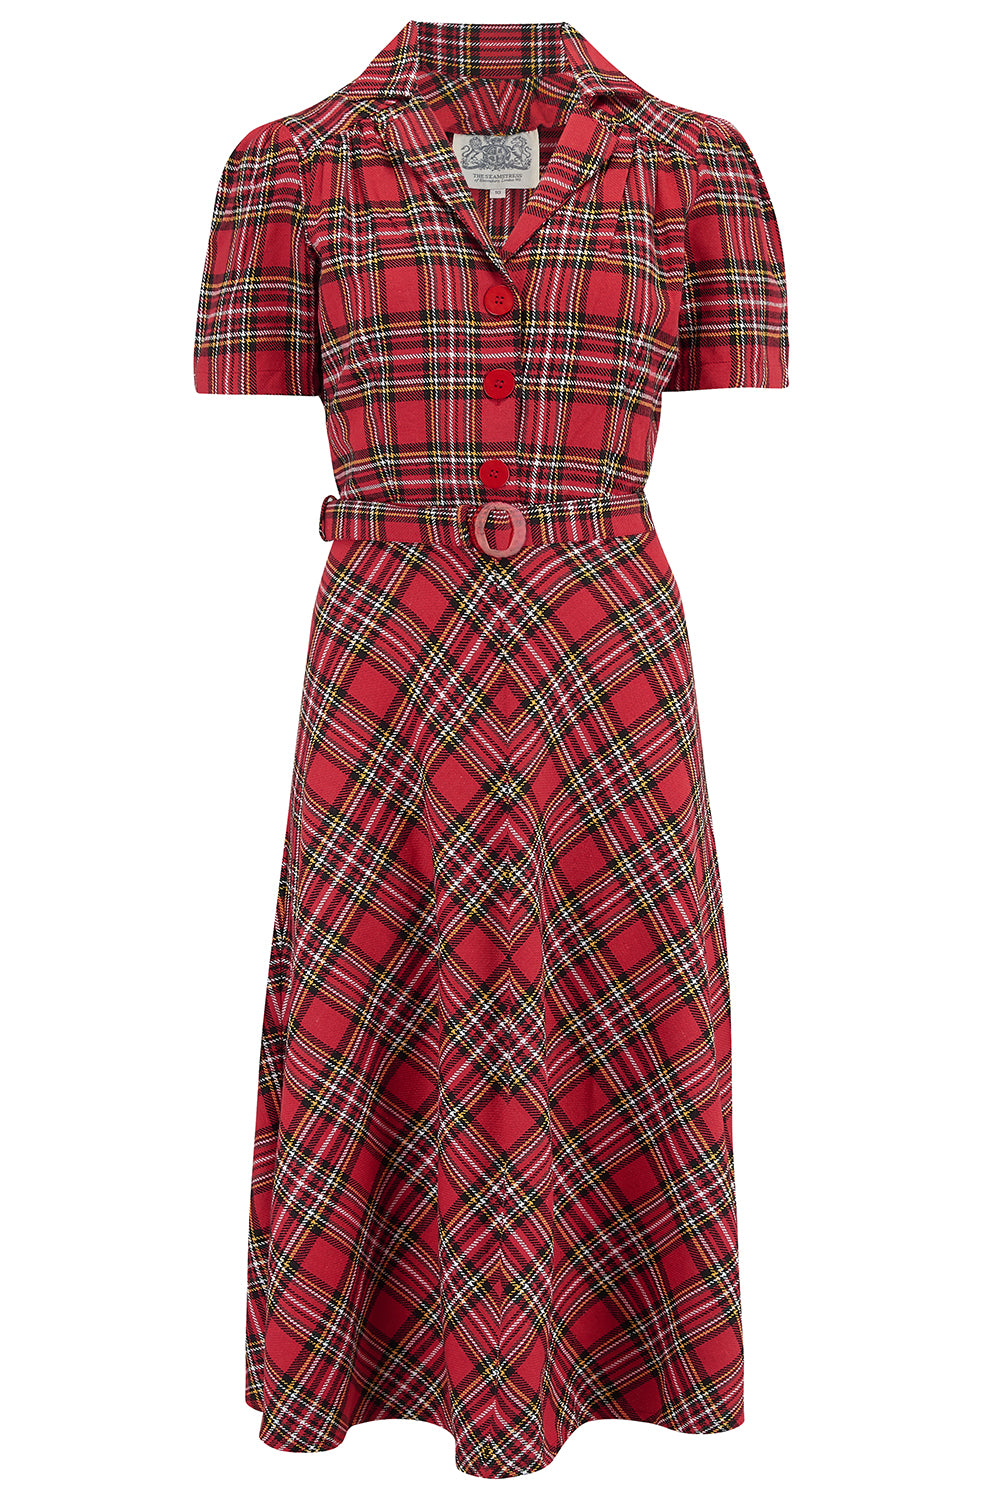 1930s Style Clothing and Fashion Lisa Tea Dress in Traditional Red Tartan Authentic 1940s Vintage Style £79.00 AT vintagedancer.com